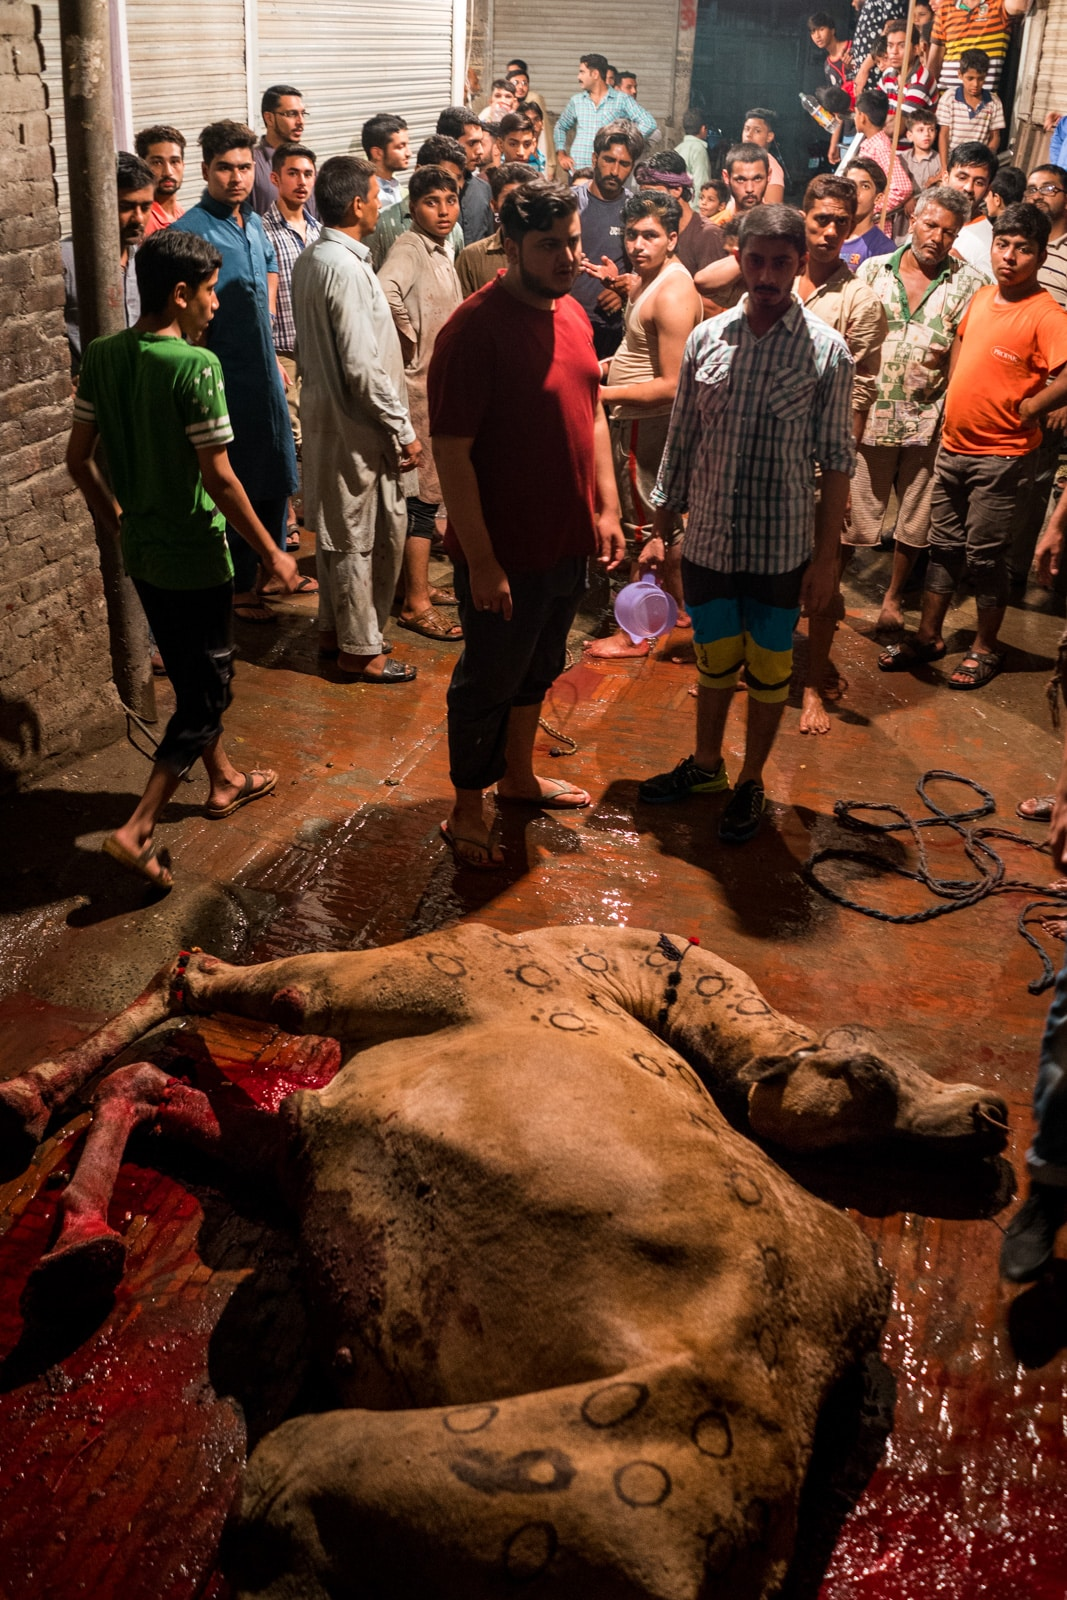 Celebrating Eid al-Adha in Lahore, Pakistan - Dead camel on the street - Lost With Purpose travel blog